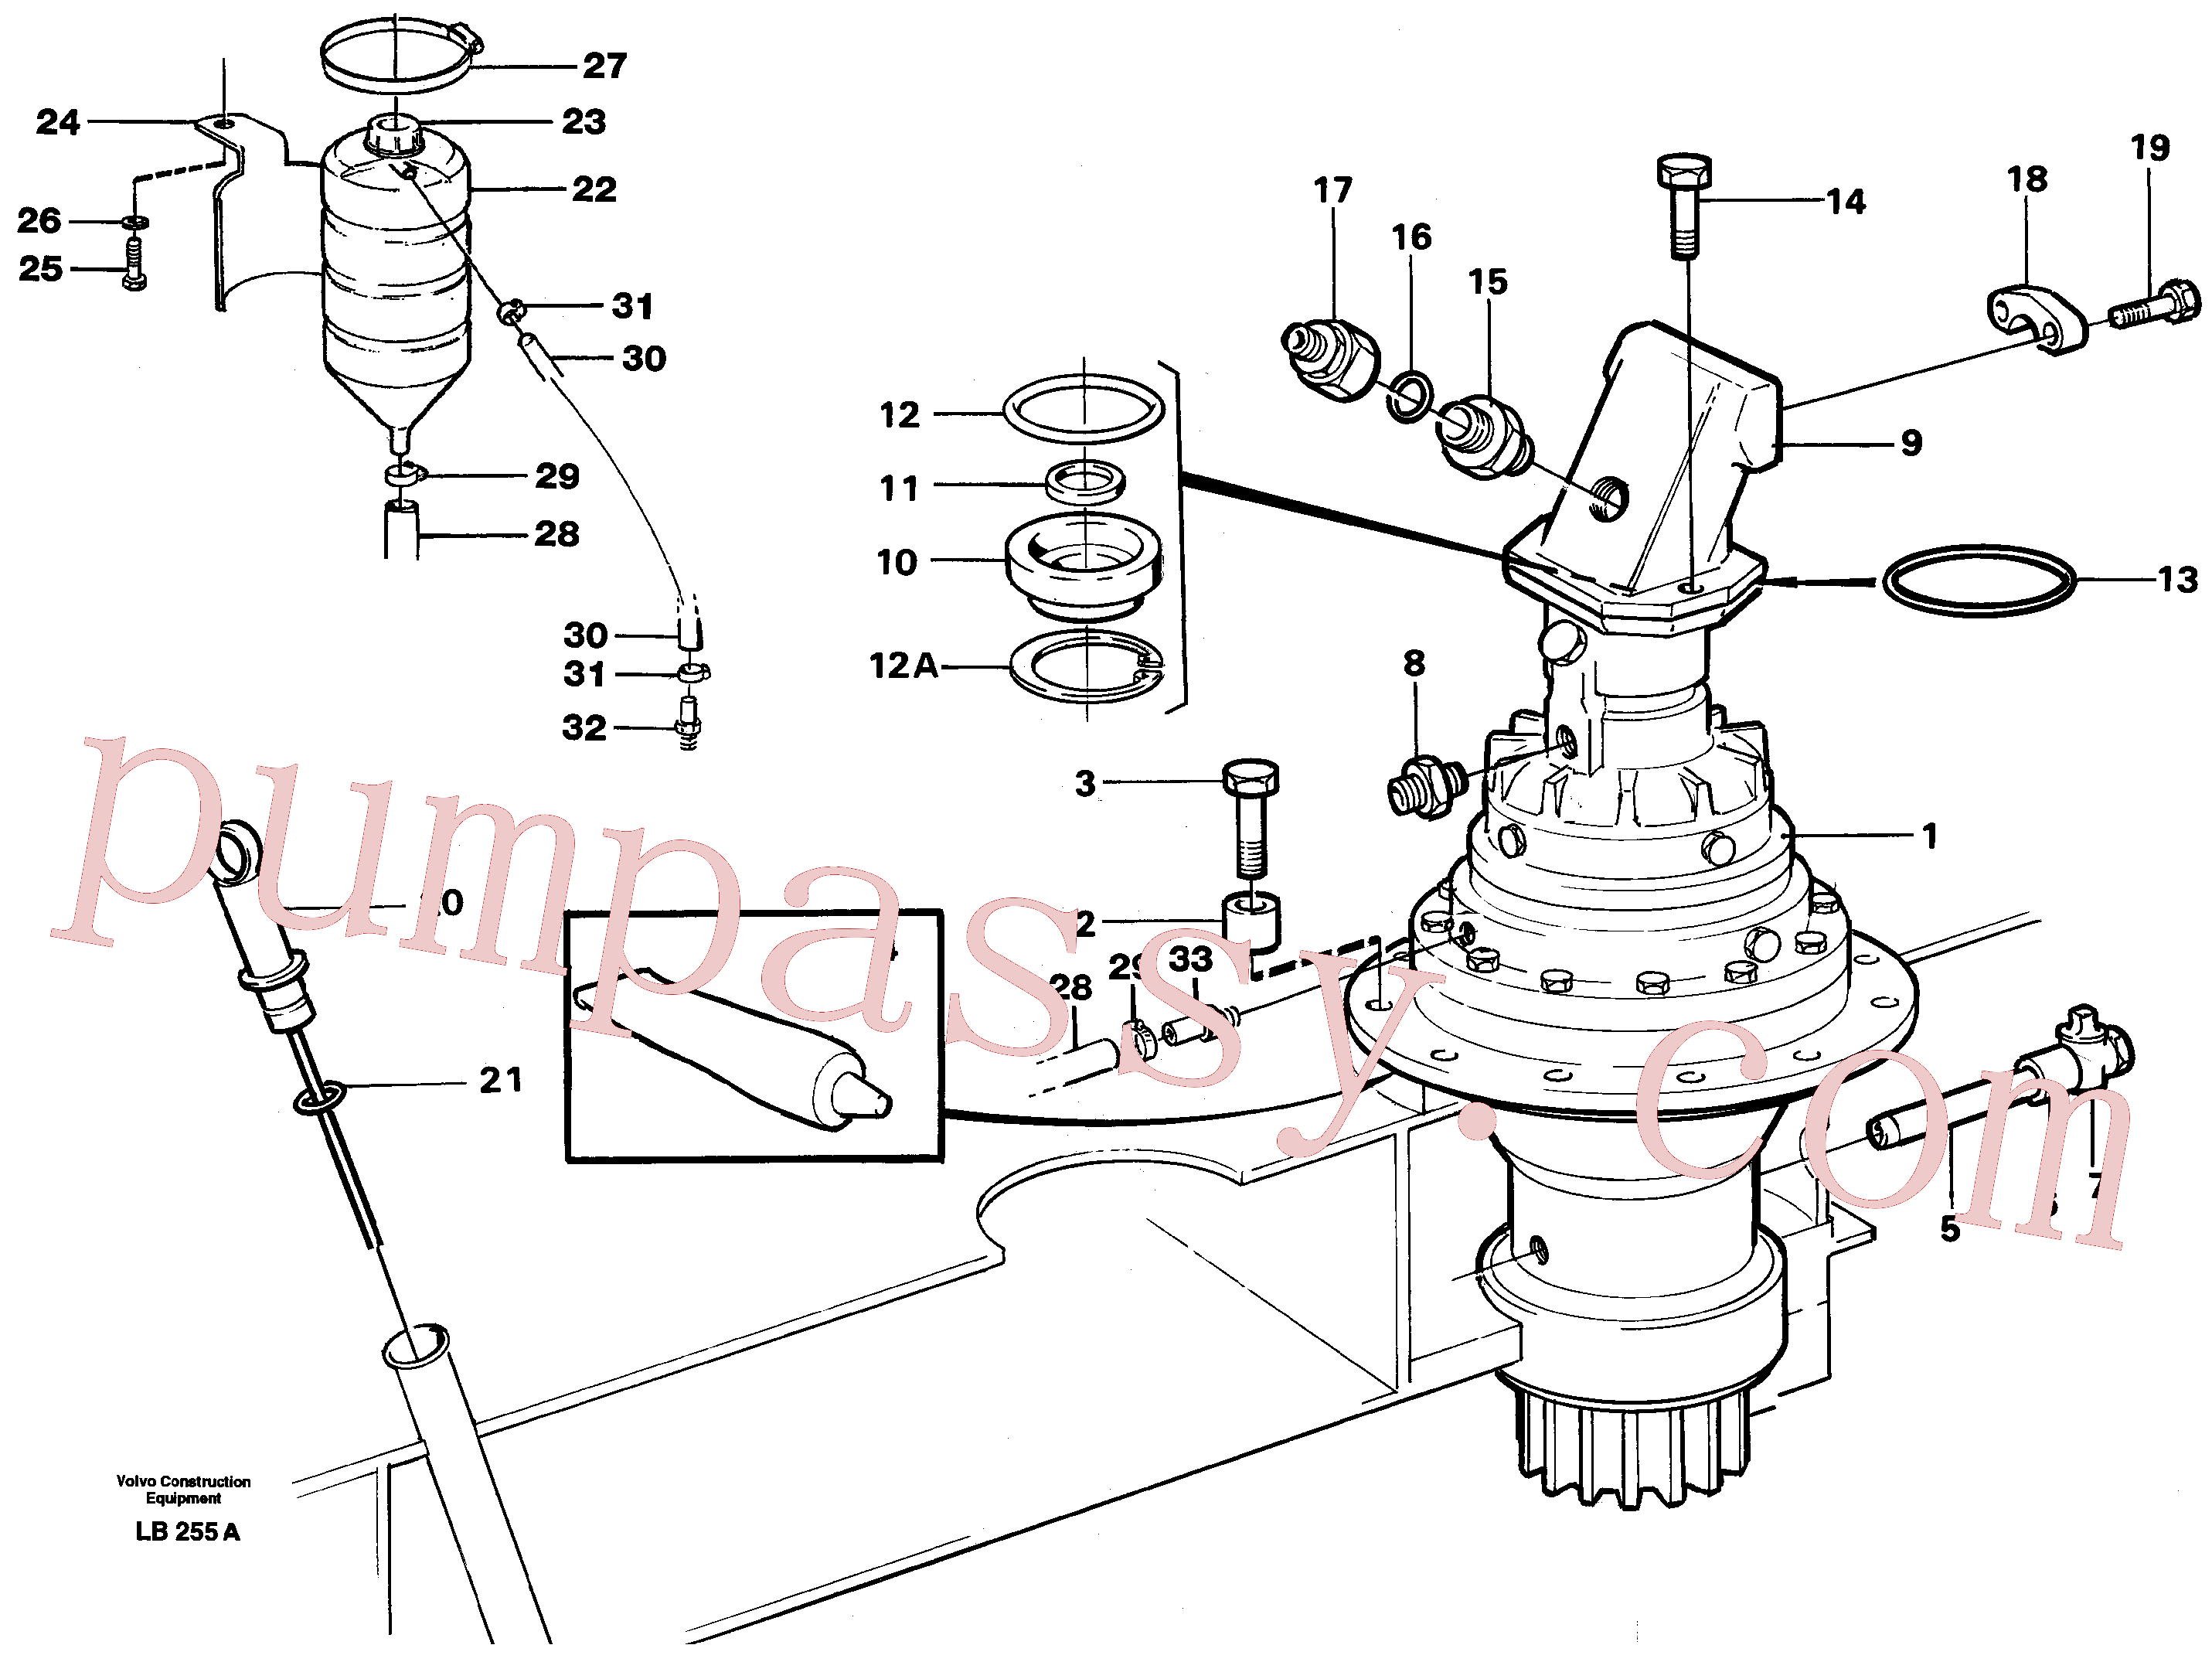 VOE11701460 for Volvo Superstructure with slew transmission(LB255A assembly)